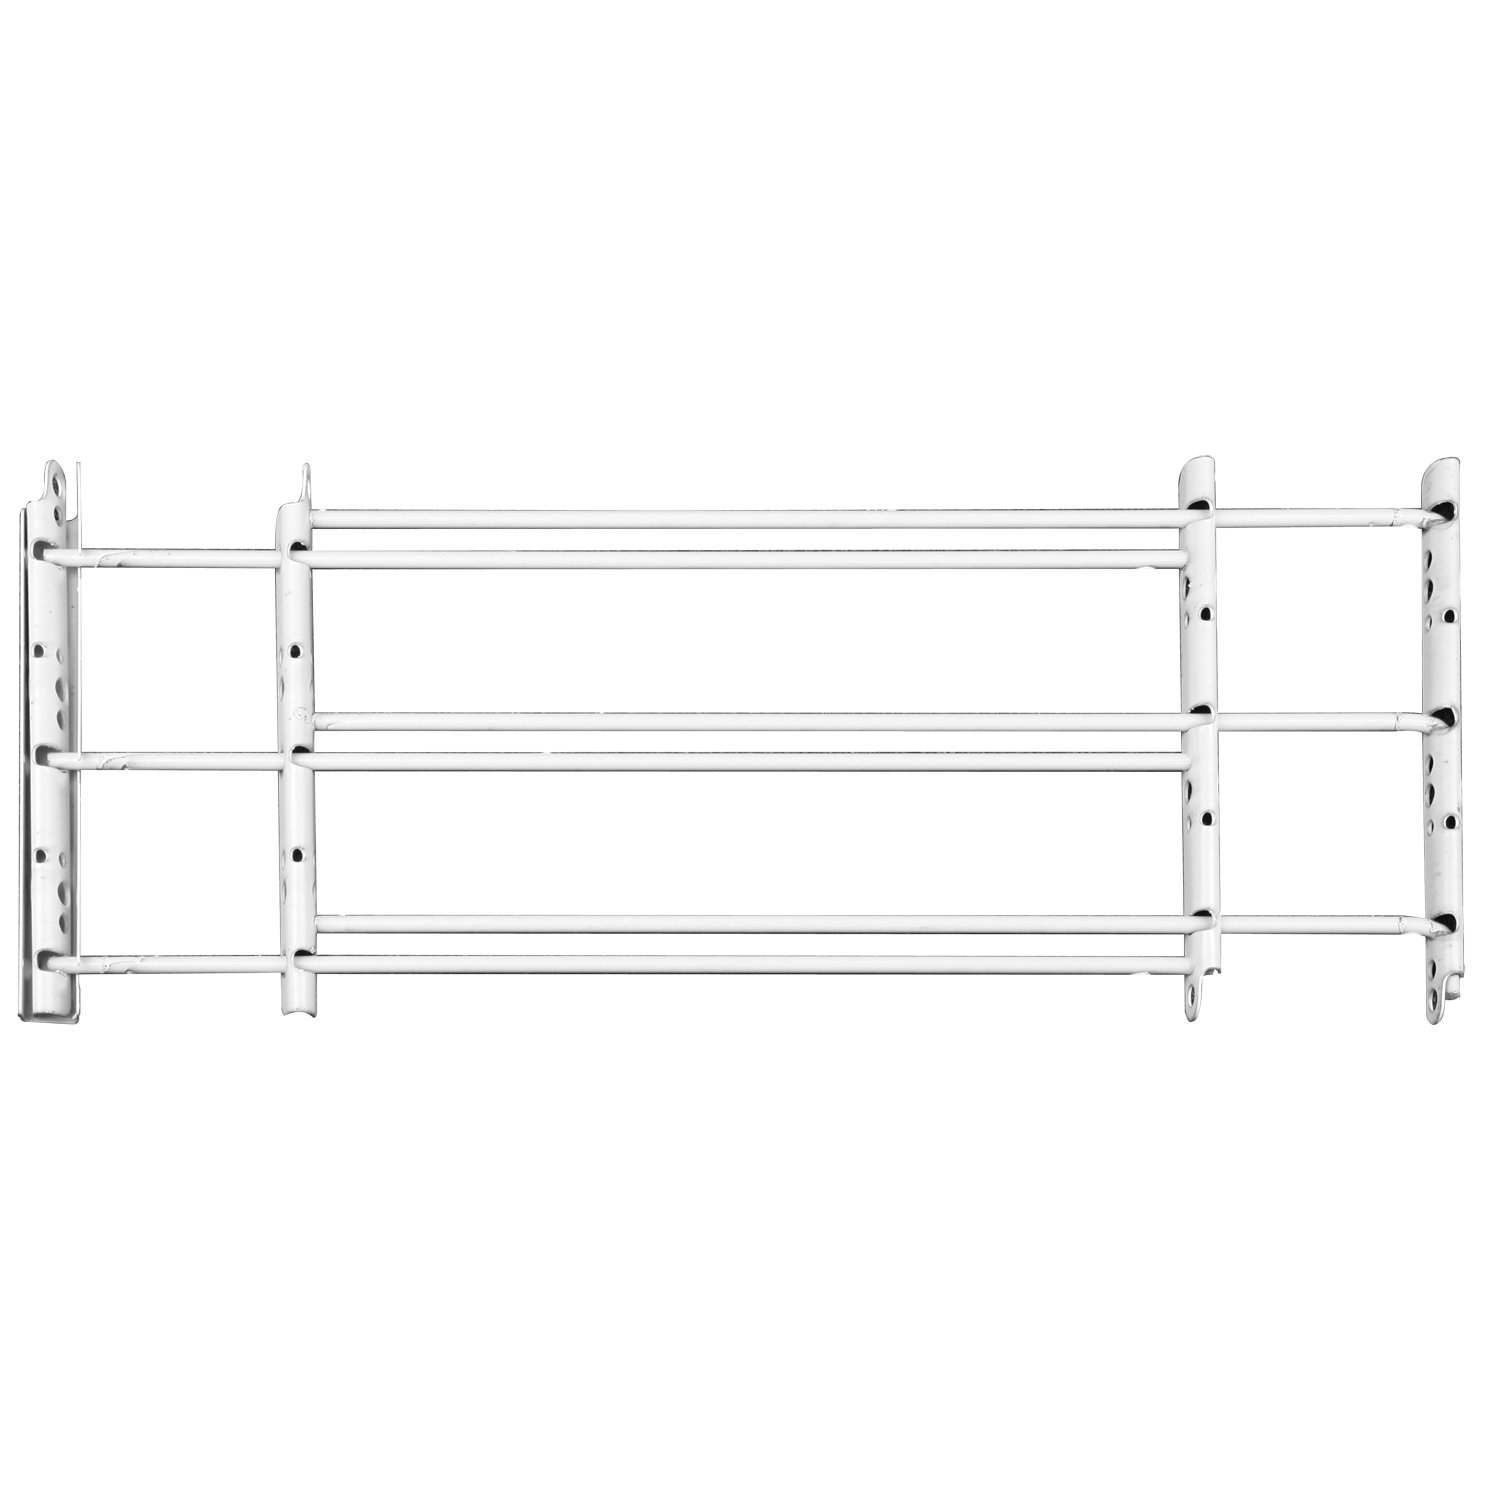 John Sterling BK-1133 3Bar Basic Fixed Guard 11x24-42 Inches White by John Sterling (Image #1)